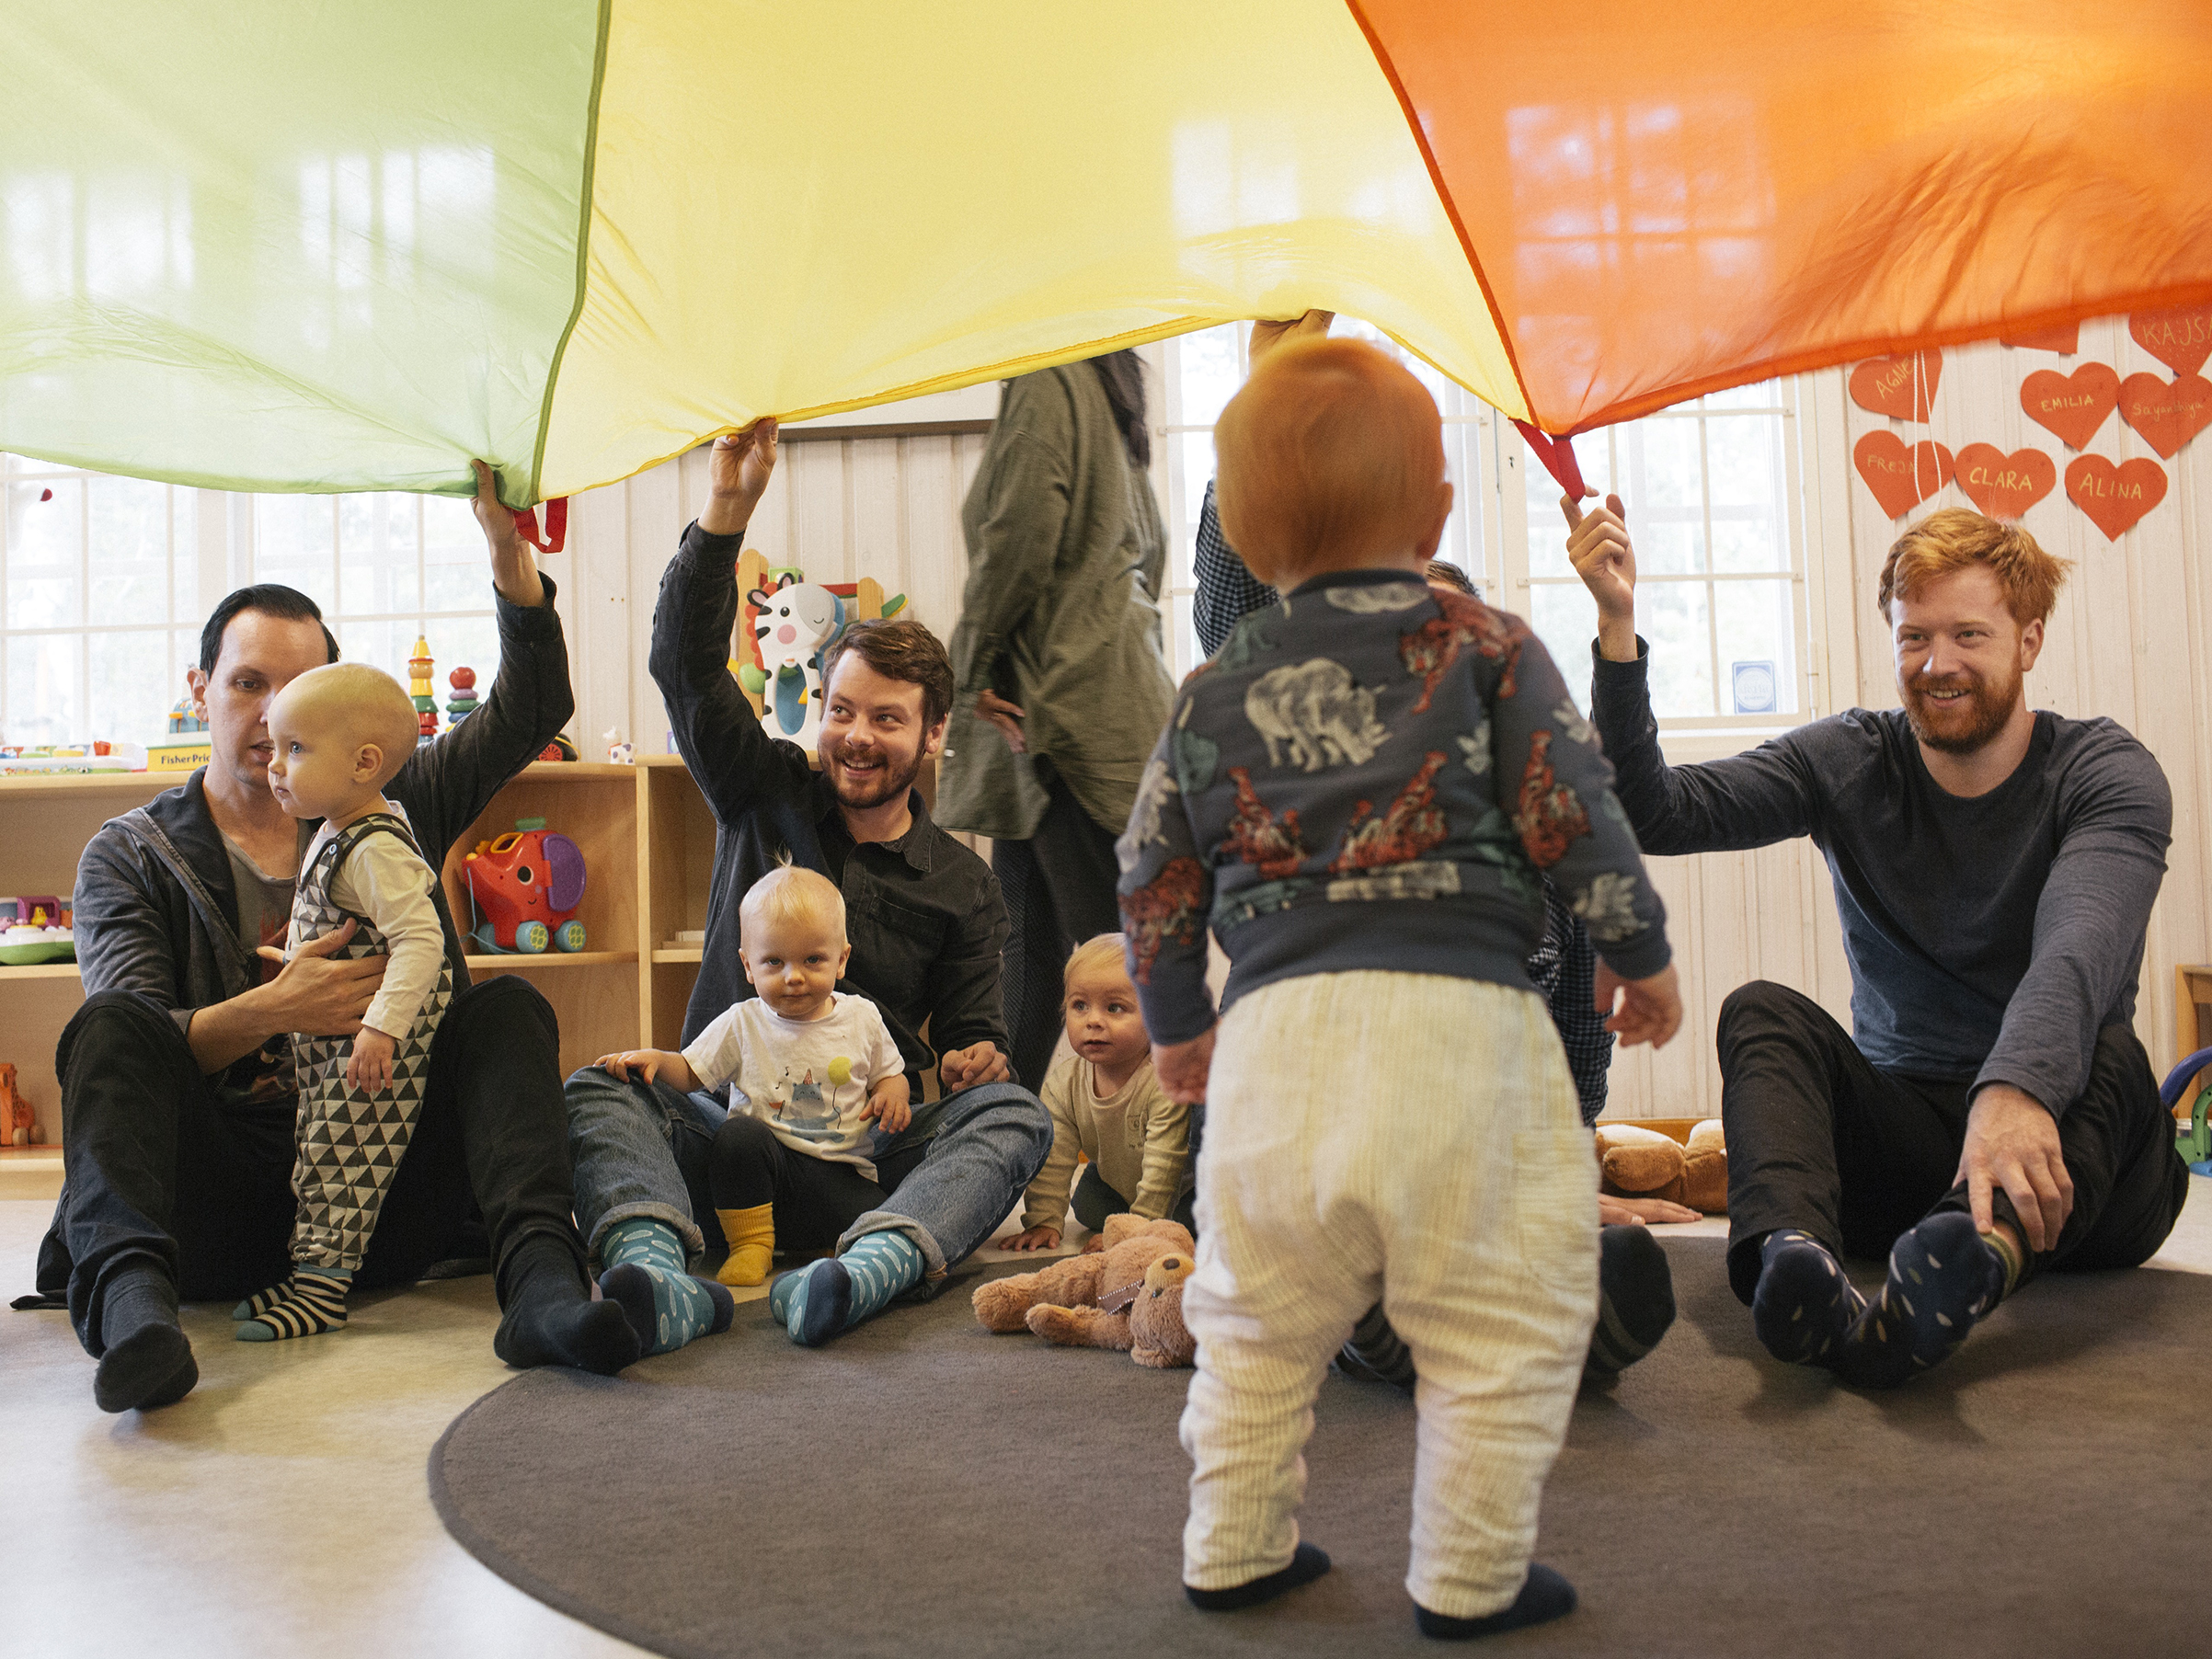 Fathers and children in Stockholm play at a center where parents on leave gather to socialize